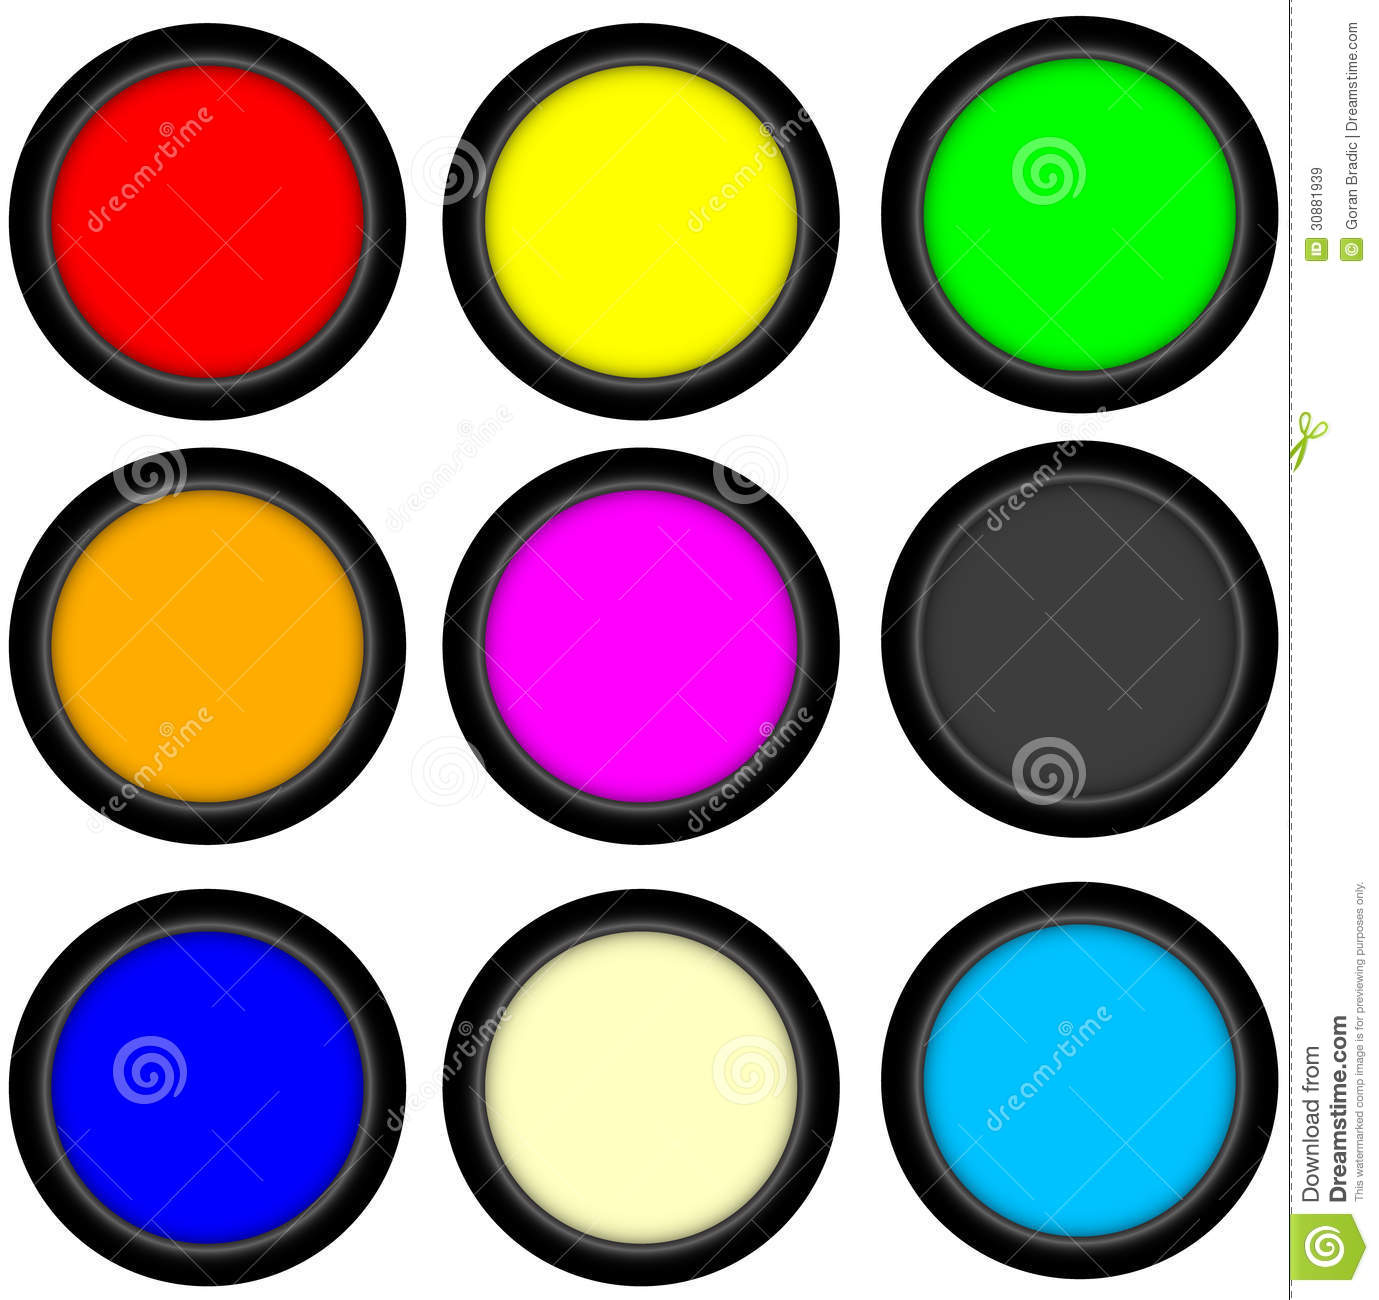 Web Button 3d Circle Royalty Free Stock Images